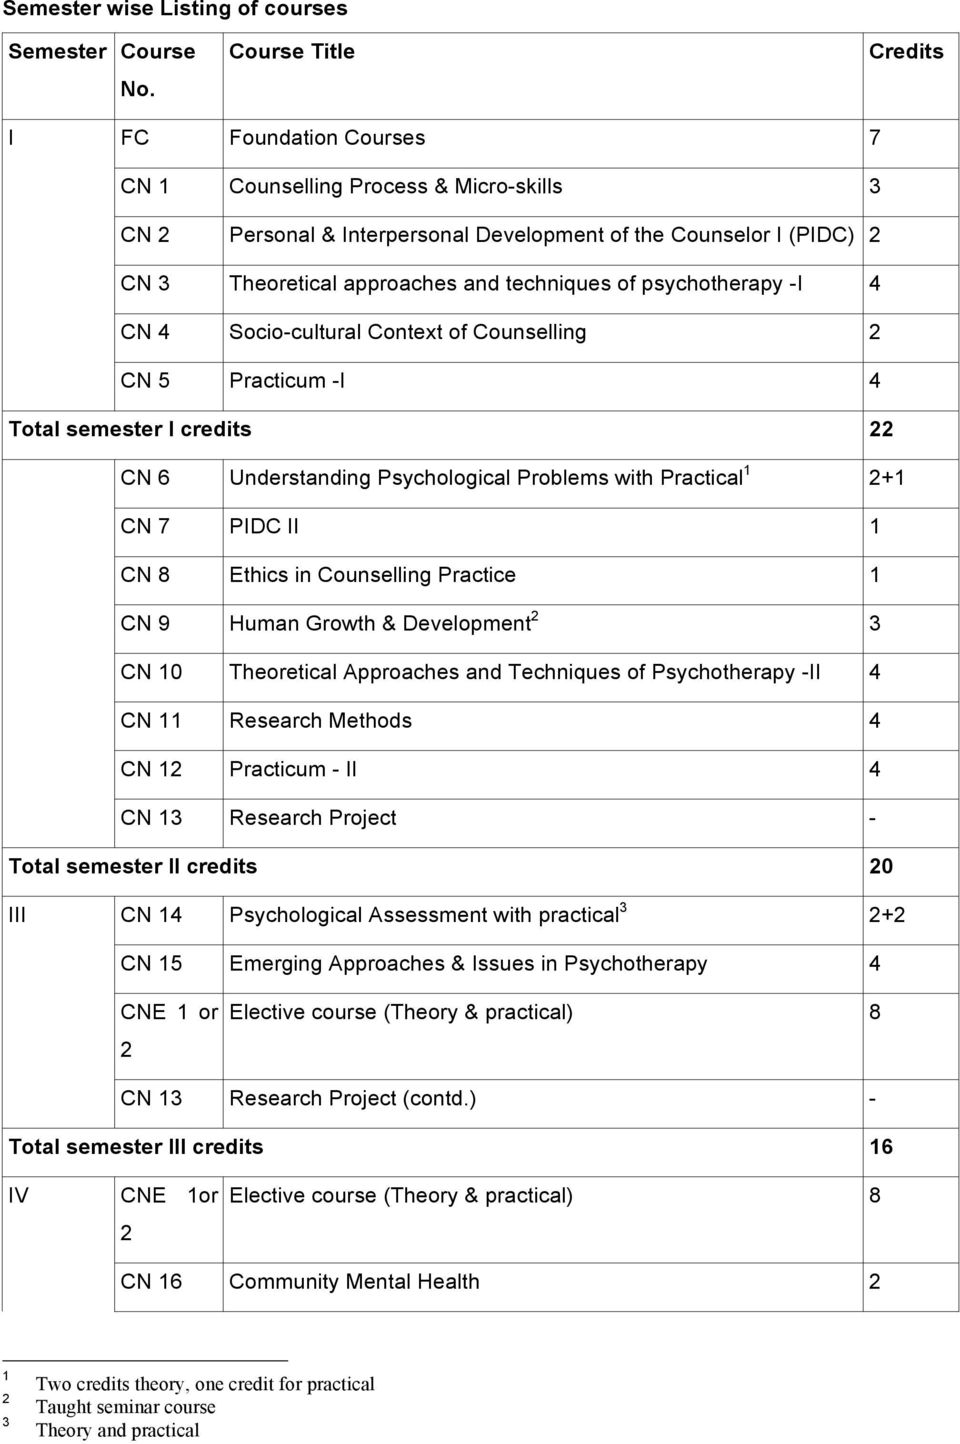 techniques of psychotherapy -I 4 CN 4 Socio-cultural Context of Counselling 2 CN 5 Practicum -I 4 Total semester I credits 22 CN 6 Understanding Psychological Problems with Practical 1 2+1 CN 7 PIDC